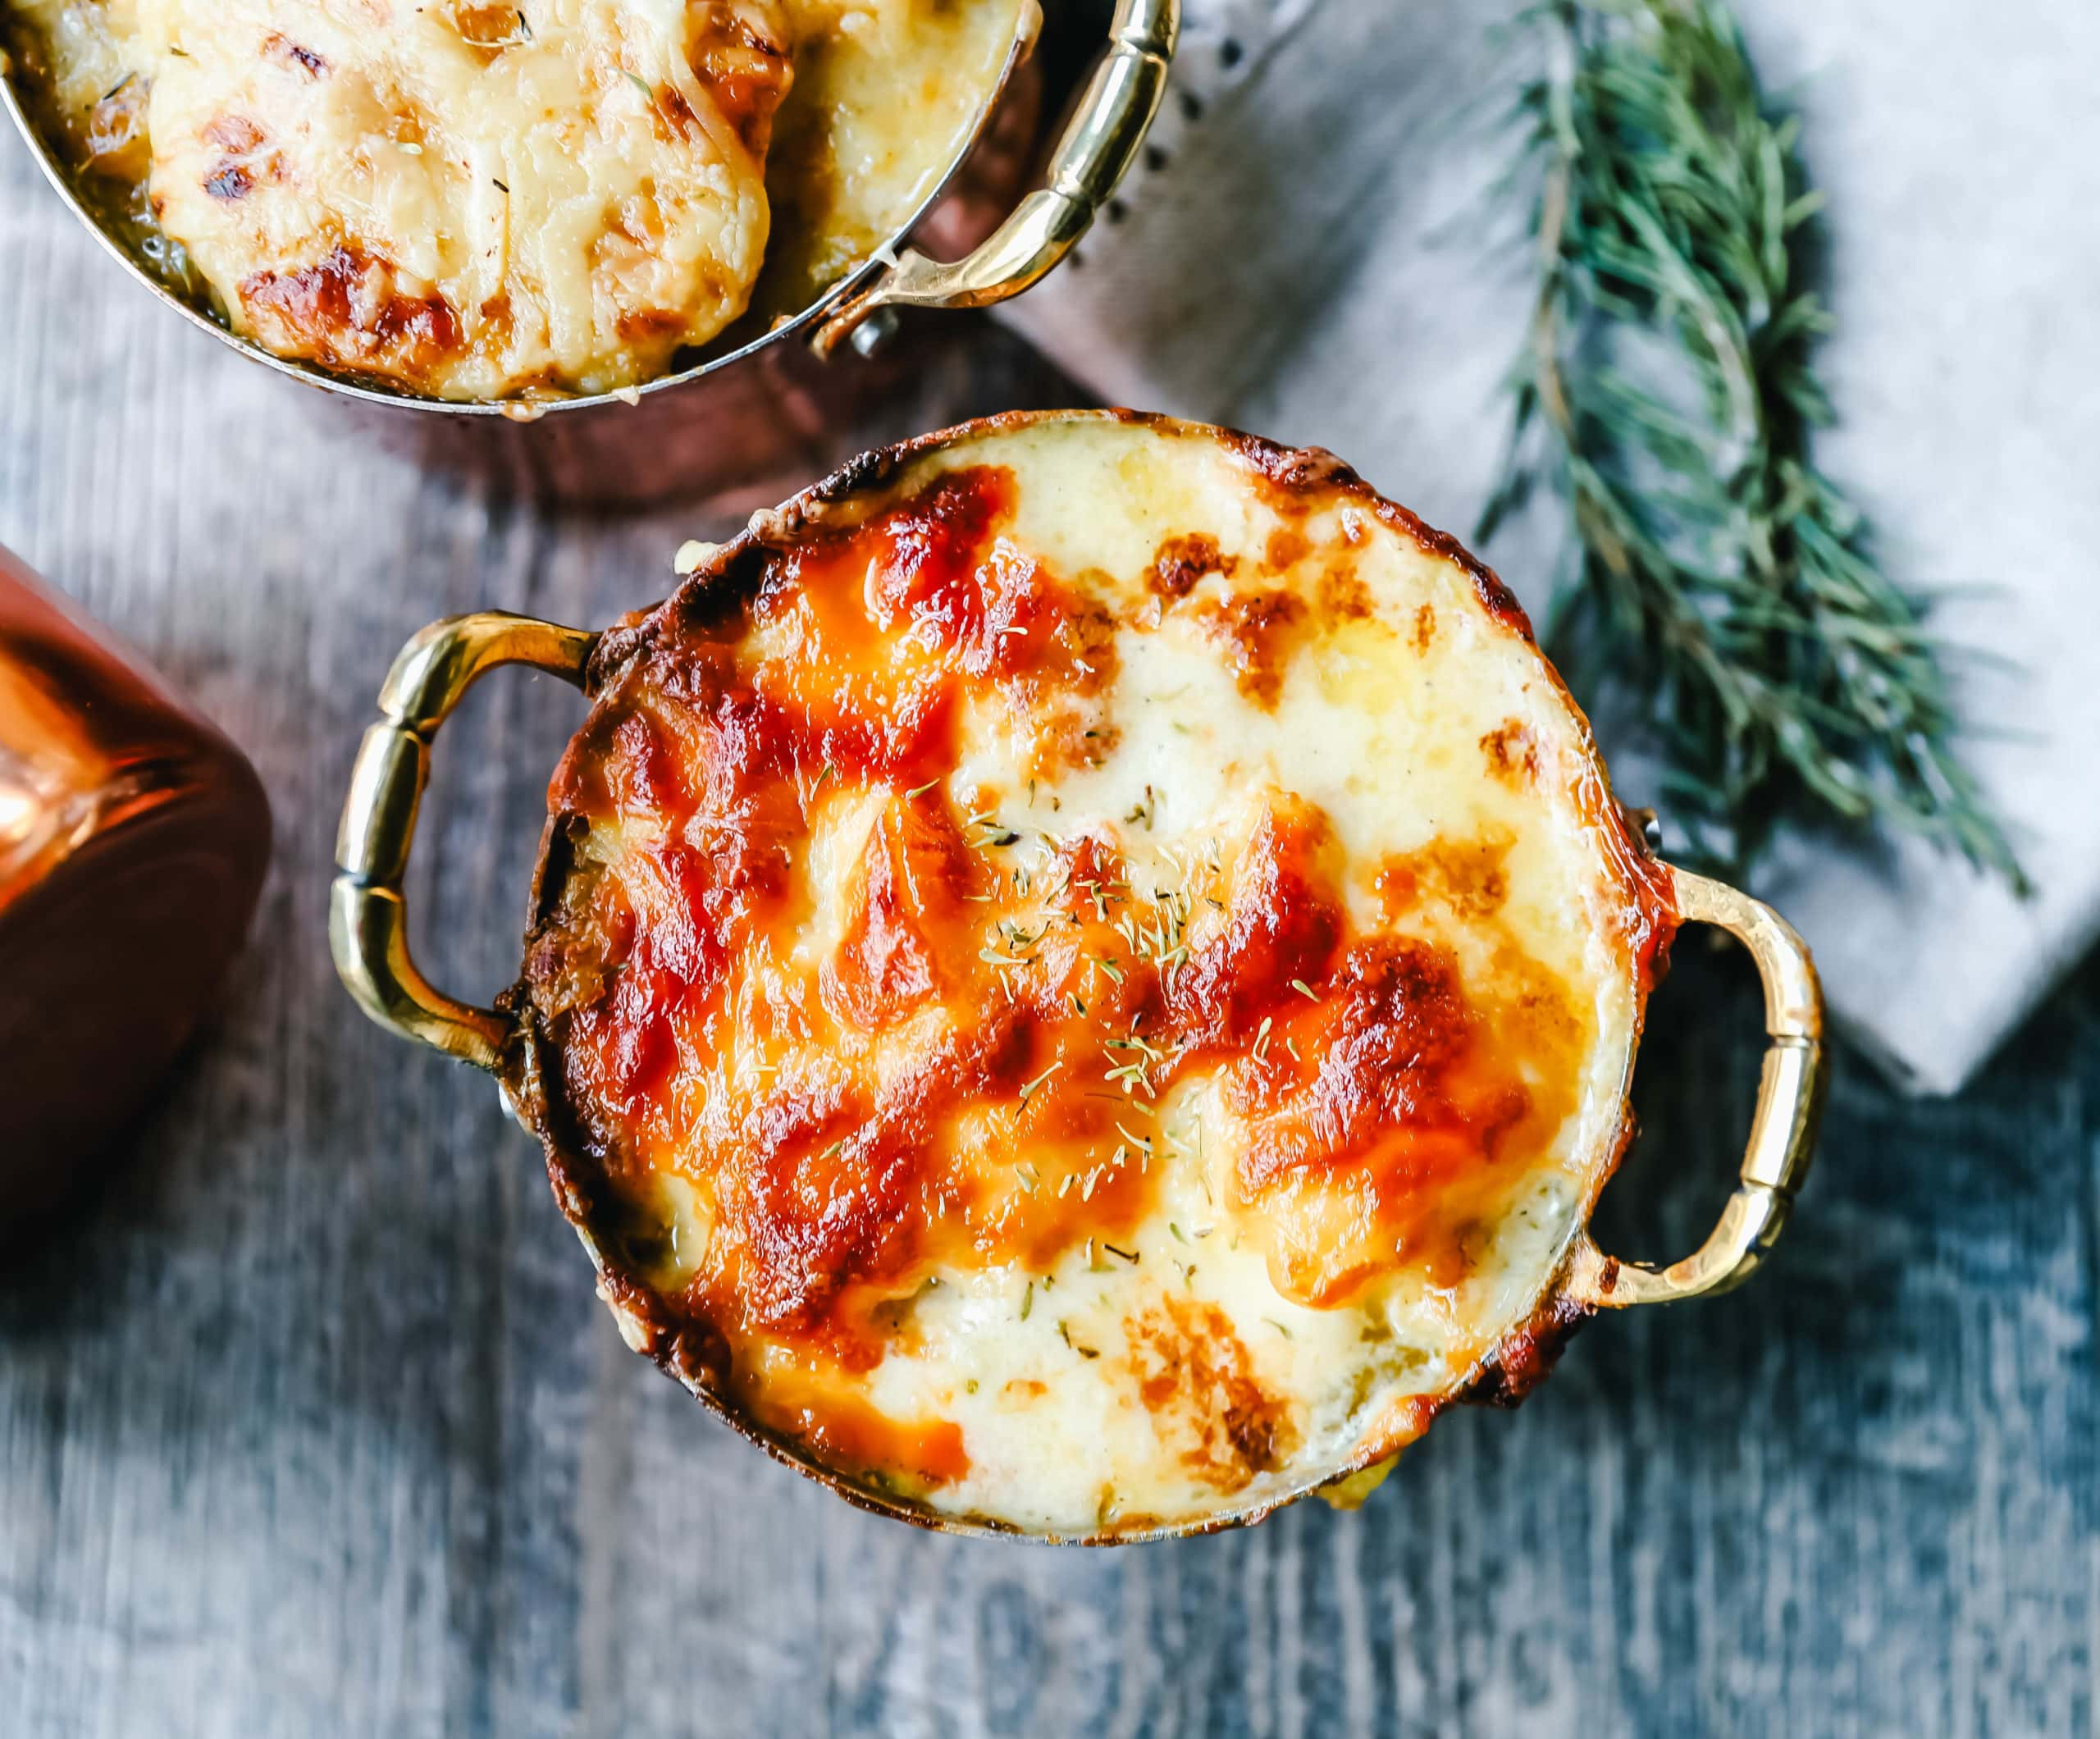 Cheesy Potatoes Au Gratin Homemade cheesy scalloped potatoes with a rich cream sauce and melted cheddar cheese. The perfect potato side dish recipe! www.modernhoney.com #scallopedpotatoes #augratinpotatoes #cheesypotatoes #potatoesaugratin